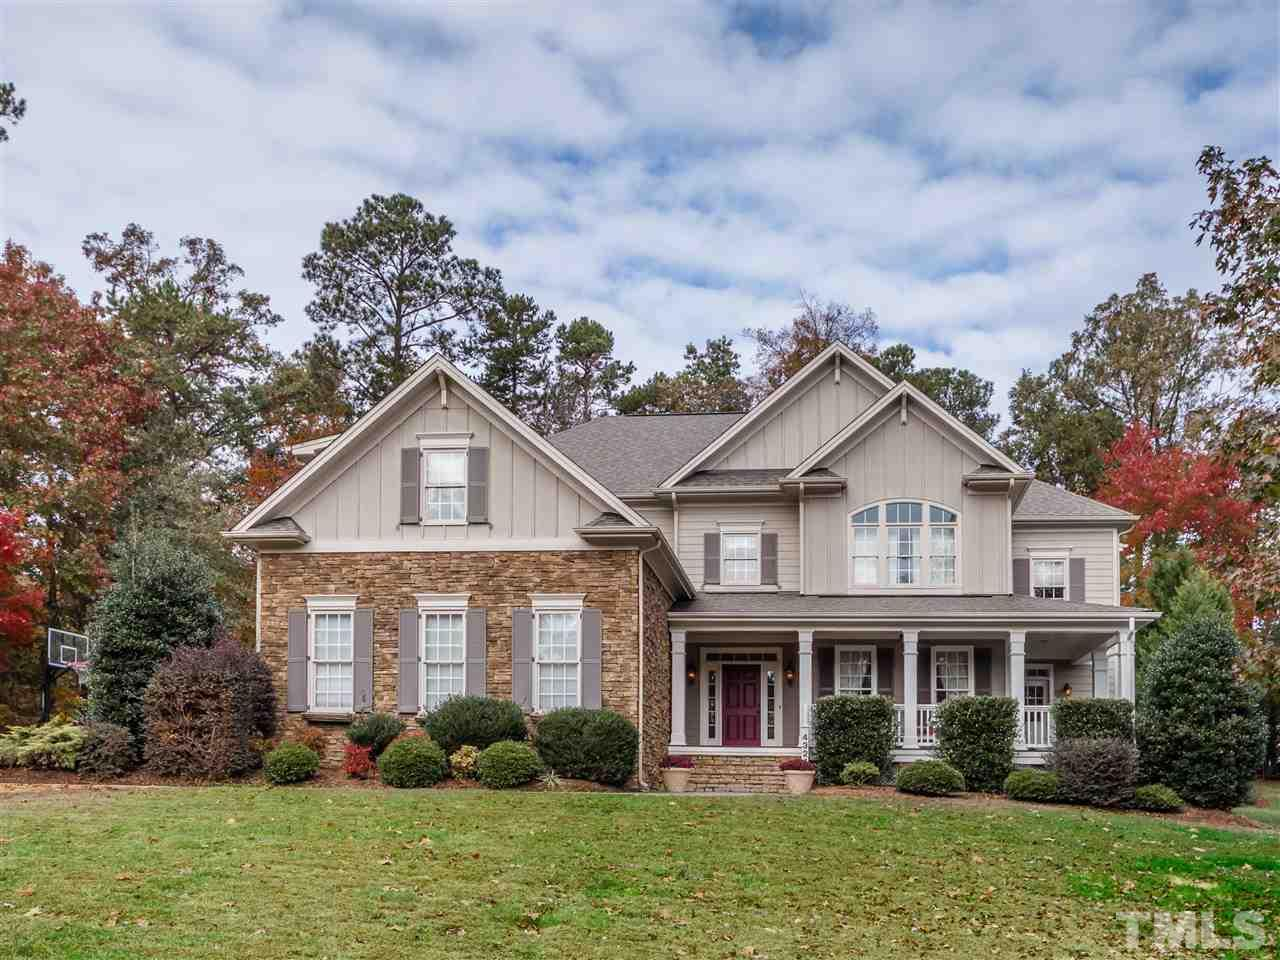 4324 Summer Brook Drive, Apex, NC 27539